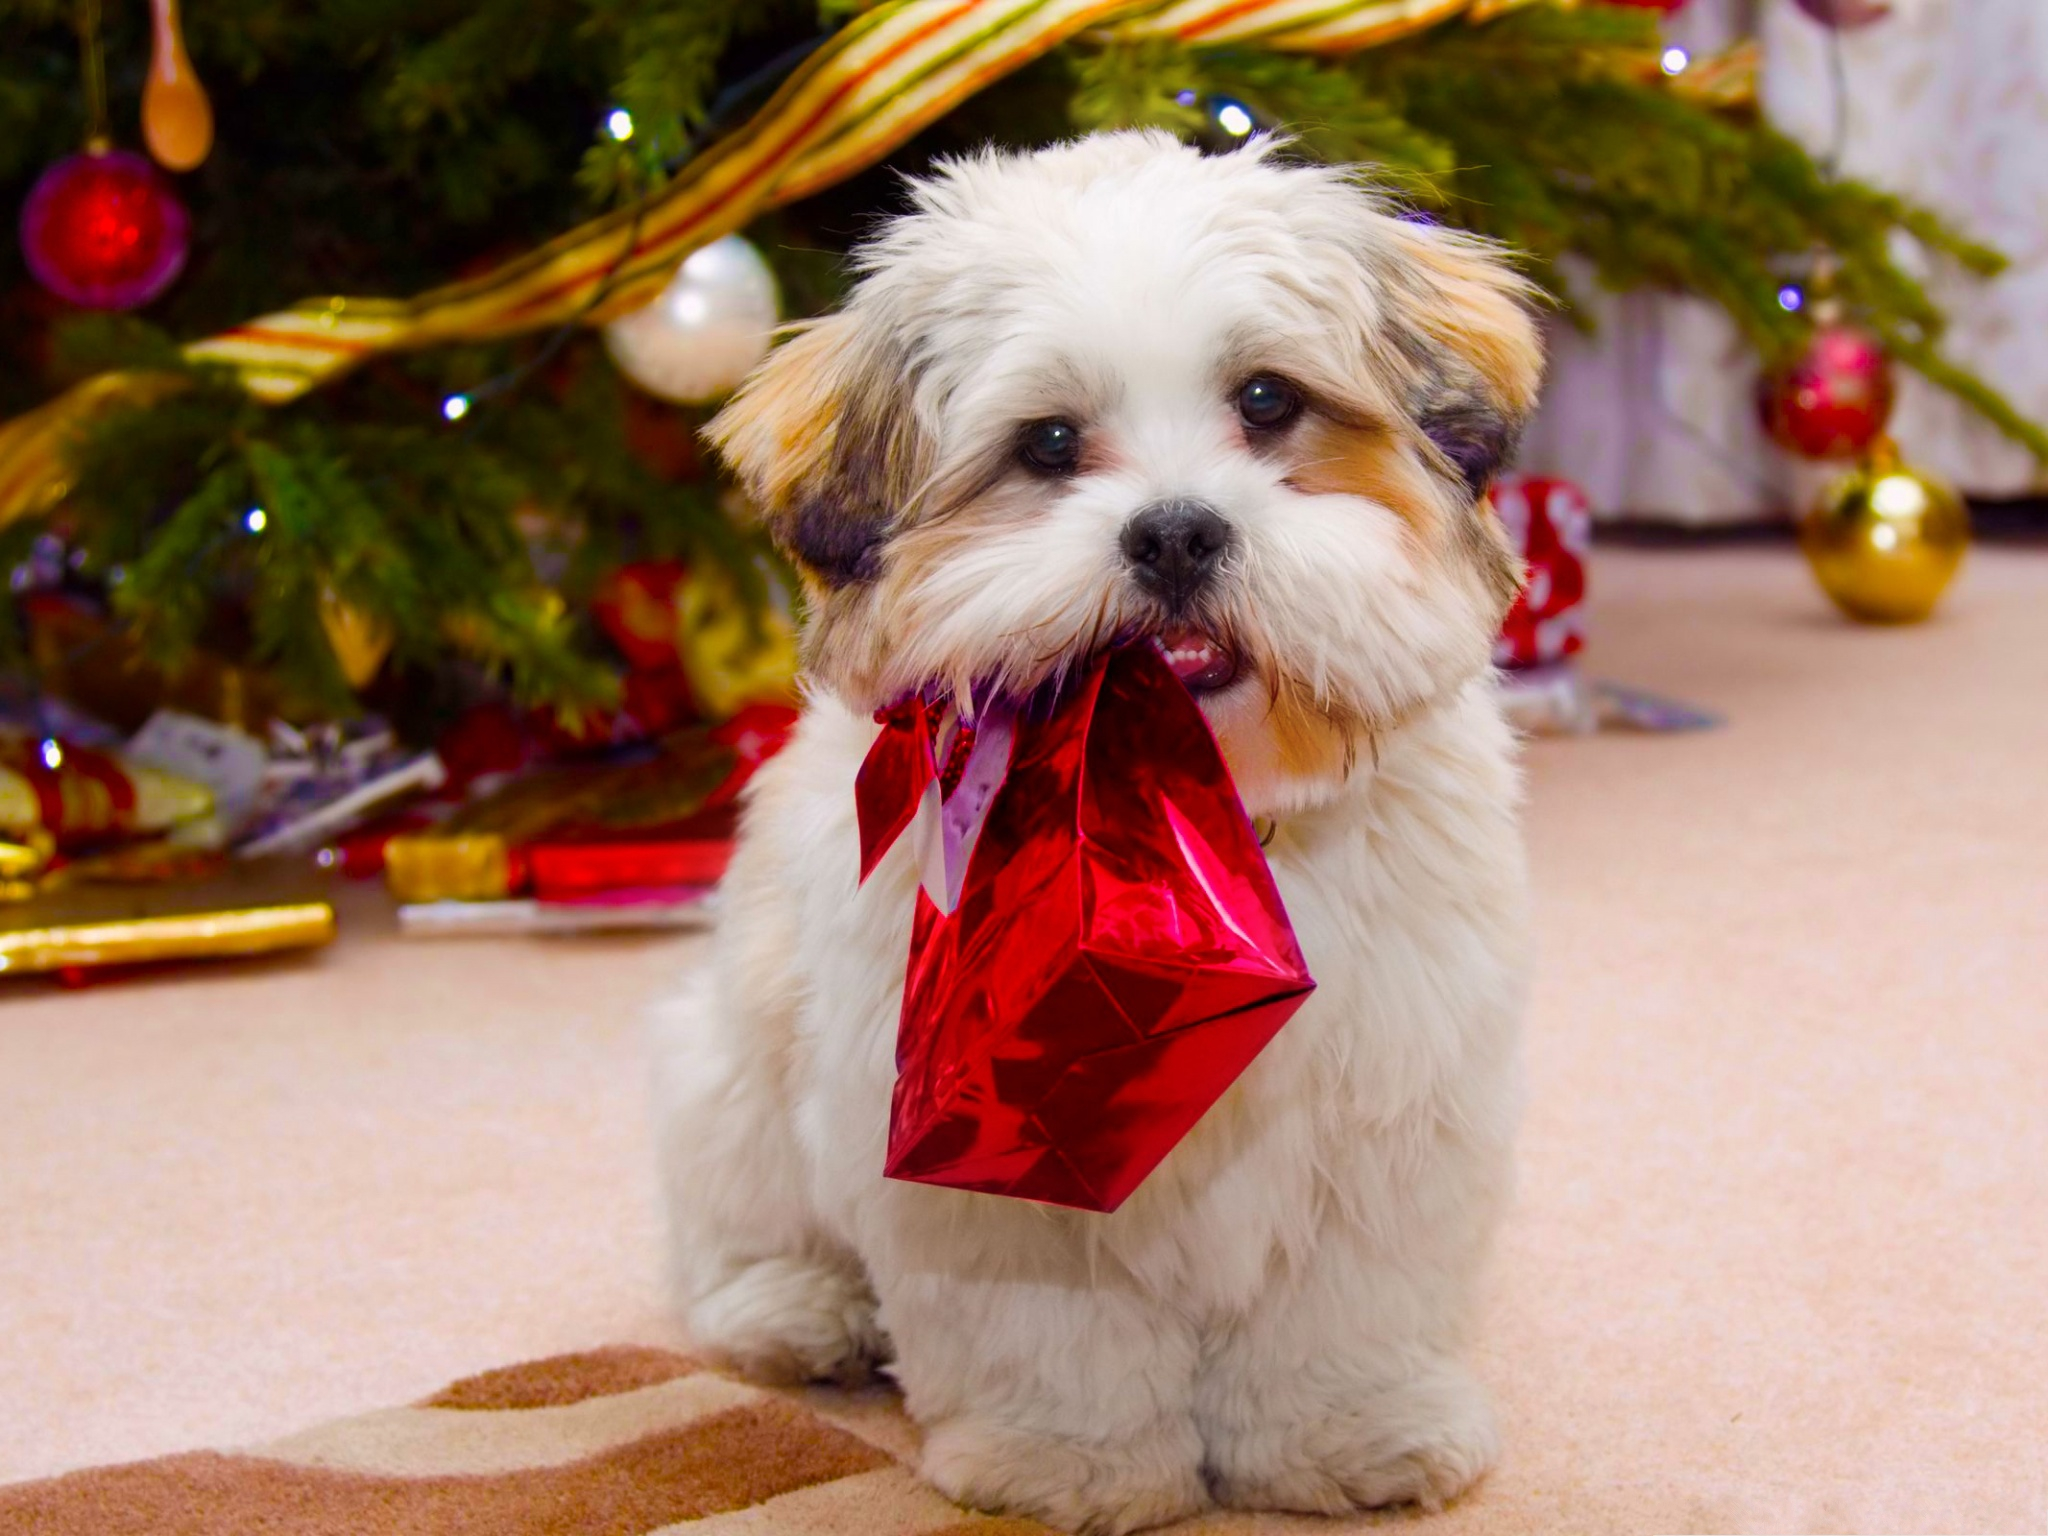 click to free download the wallpaper--Cute Dog Images, Puppy Receiving a Gift on Christmas Day, Open It! 2048X1536 free wallpaper download